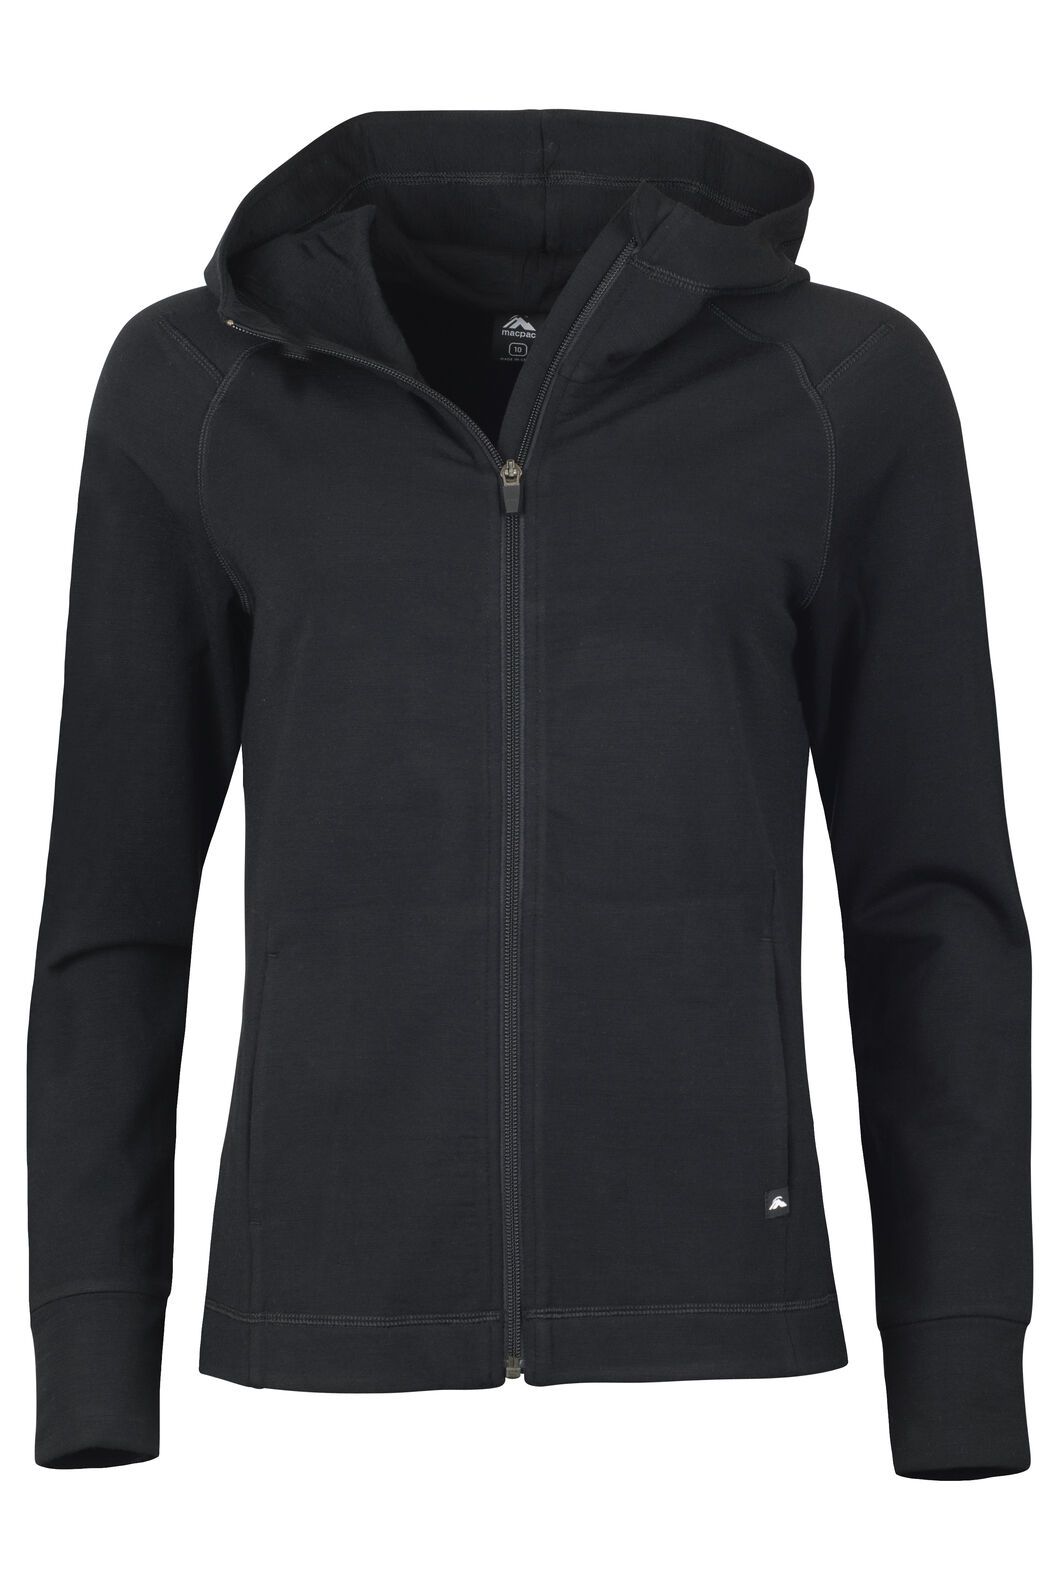 Focus 280 Merino Hoody - Women's, Black, hi-res